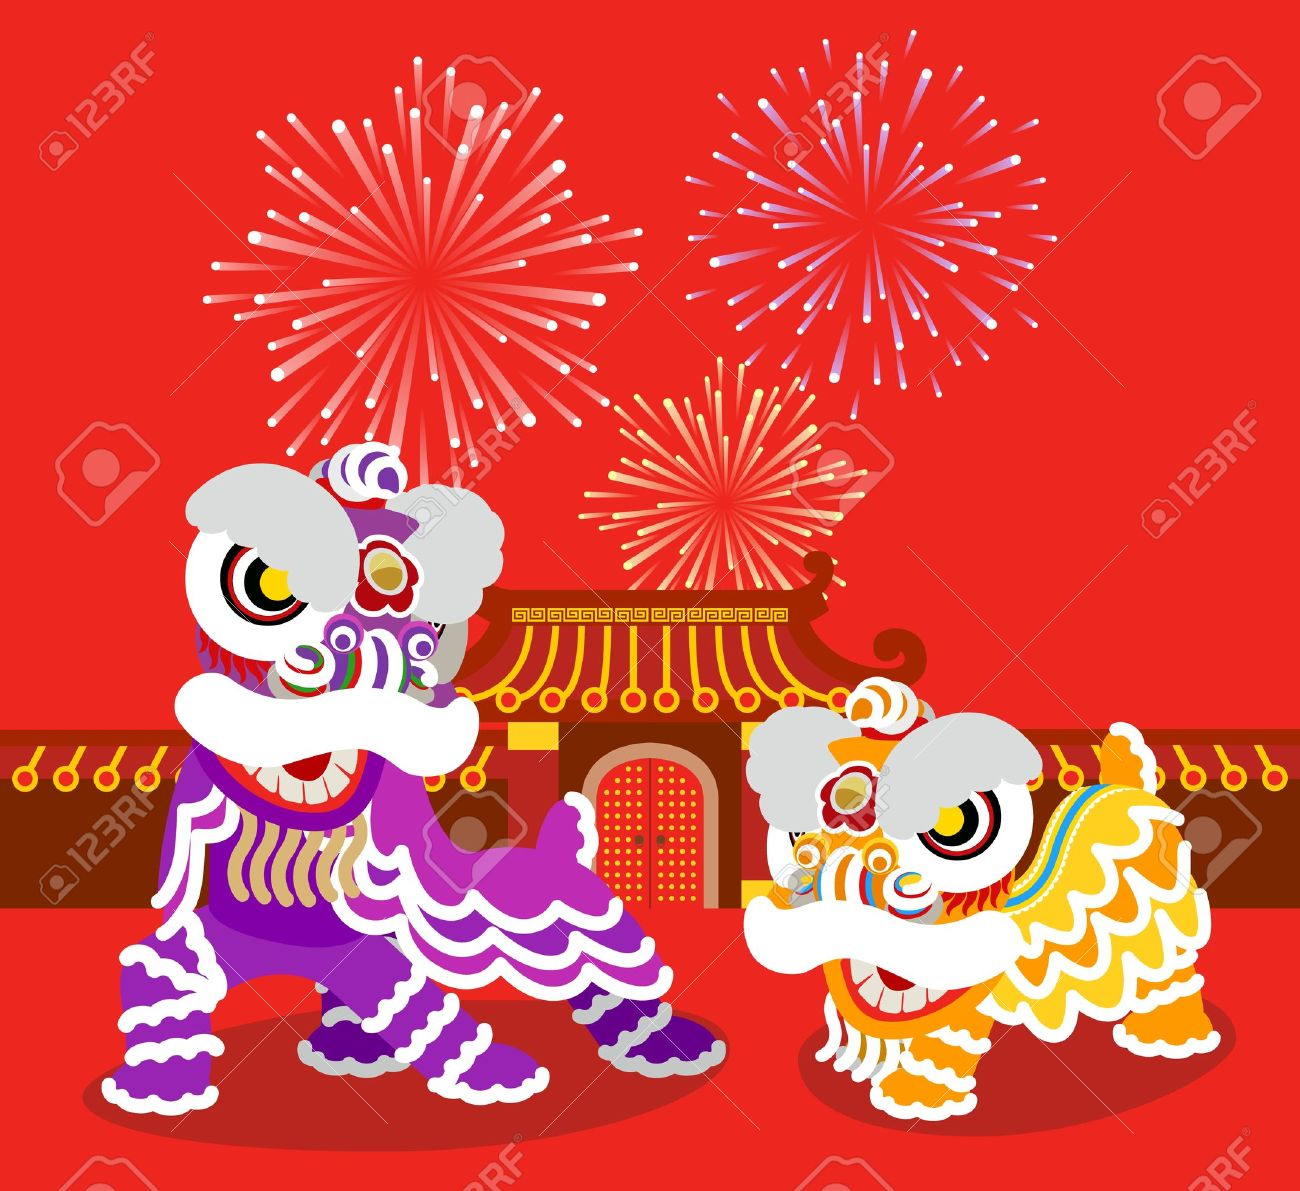 Lion Dancing And Chinese New Year Royalty Free Cliparts, Vectors ...